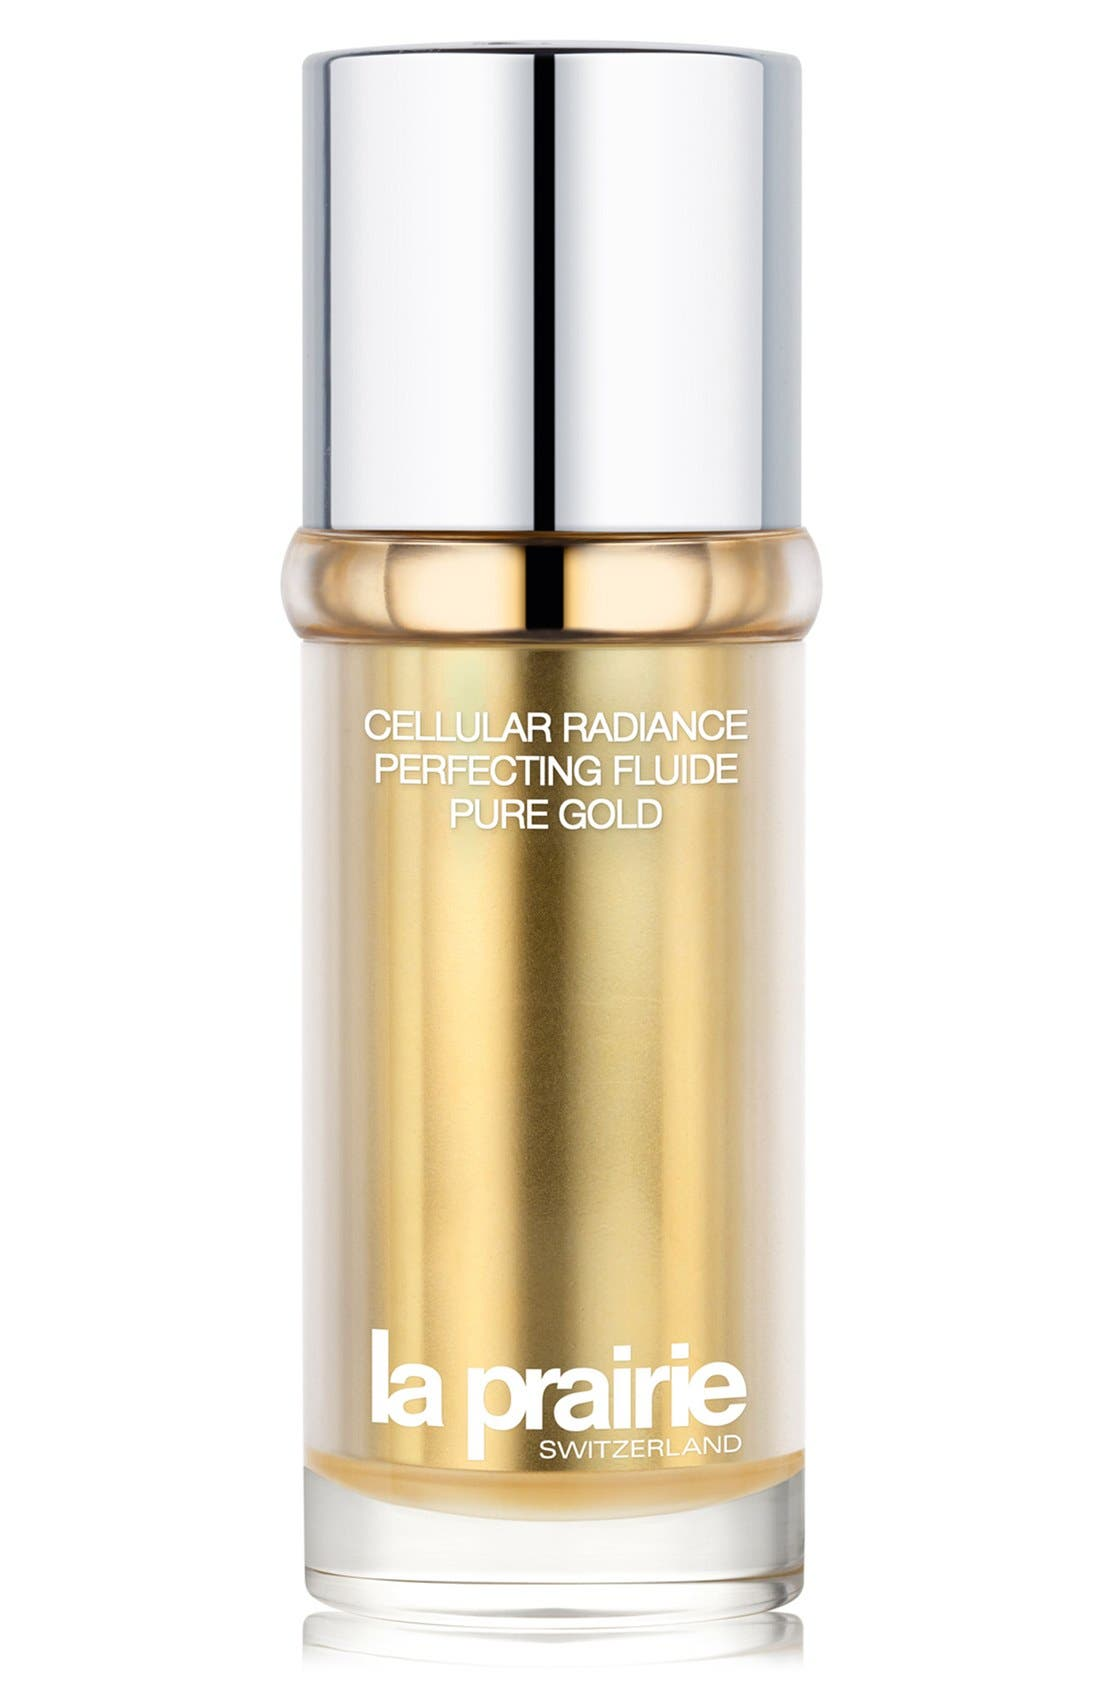 La Prairie Cellular Radiance Perfecting Fluide Pure Gold Moisturizer